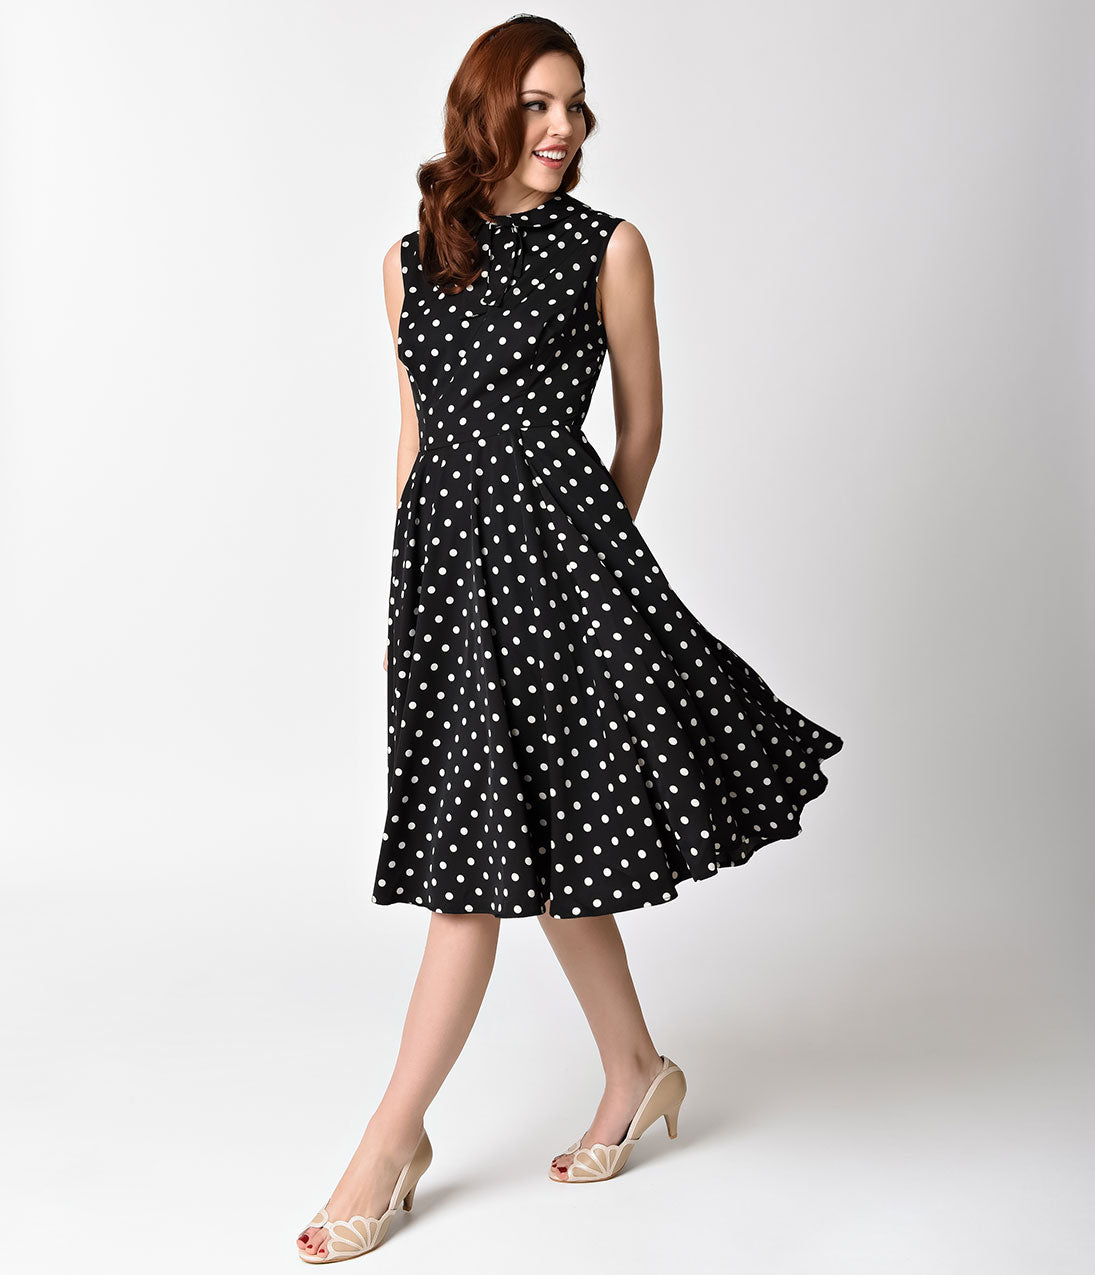 1940s Evening, Prom, Party, Cocktail Dresses & Ball Gowns Unique Vintage 1940s Black  Ivory Dotted Sleeveless Olson Swing Dress $88.00 AT vintagedancer.com